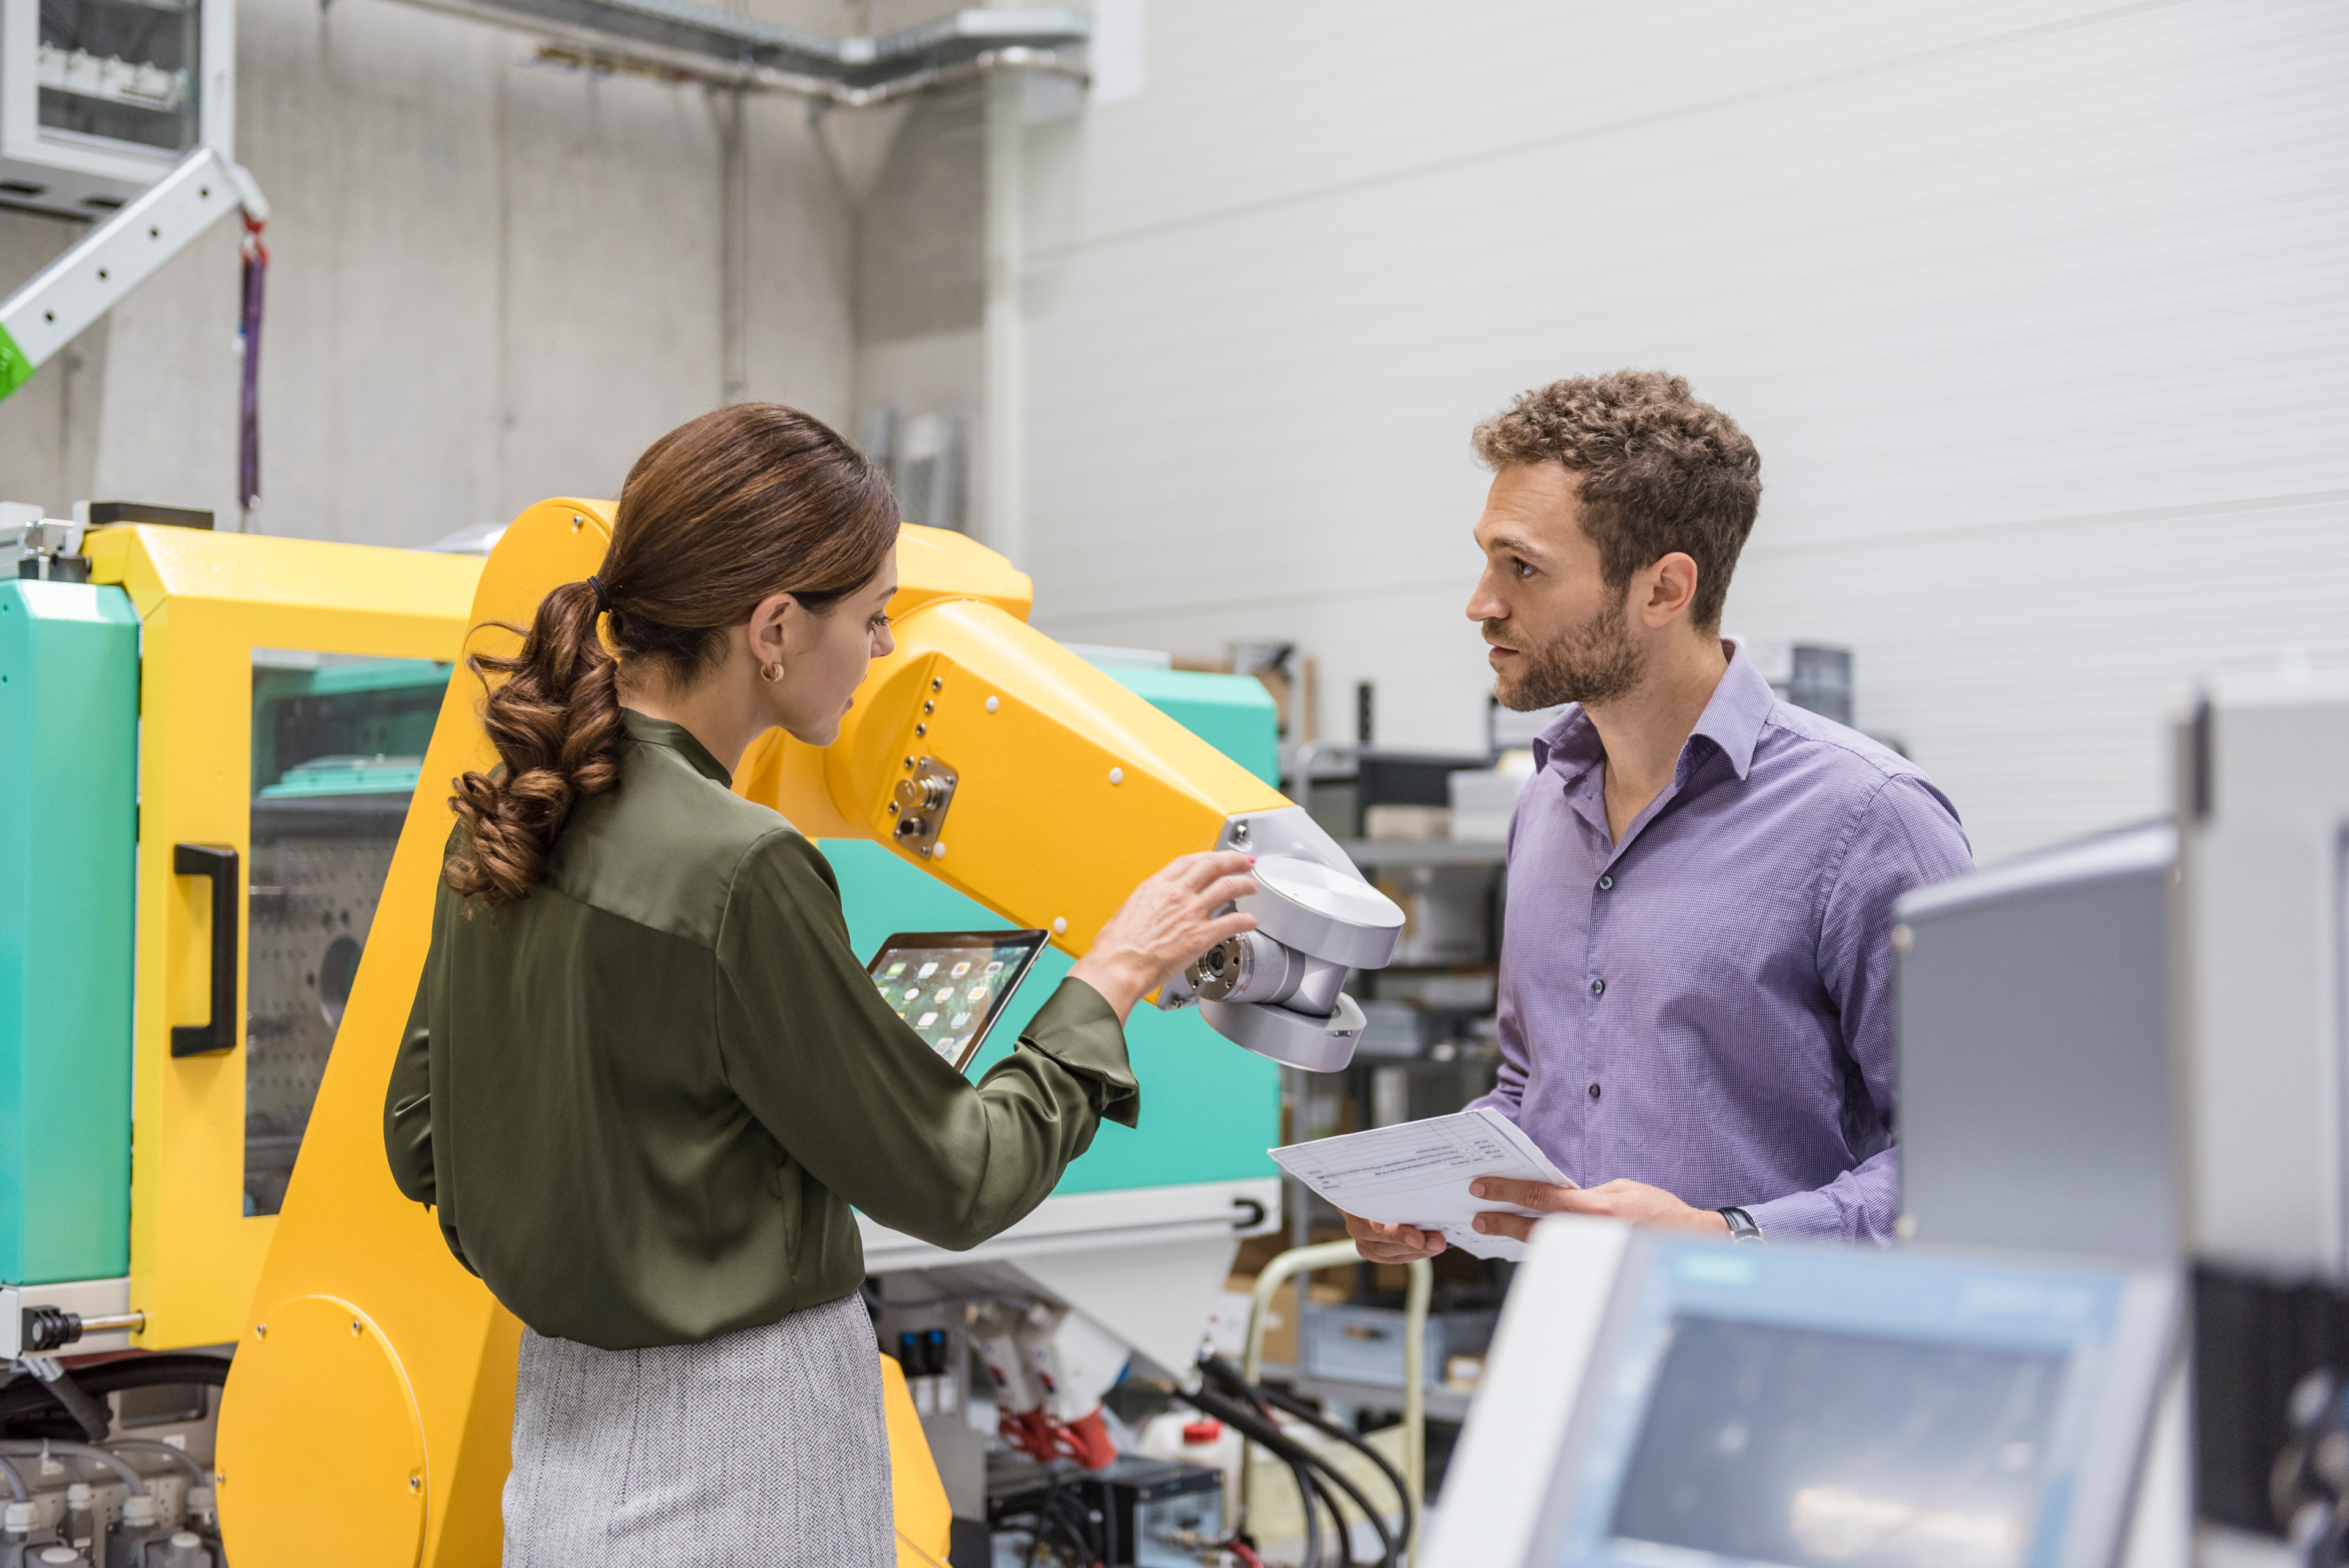 Two professionals meeting in front of industrial equipment